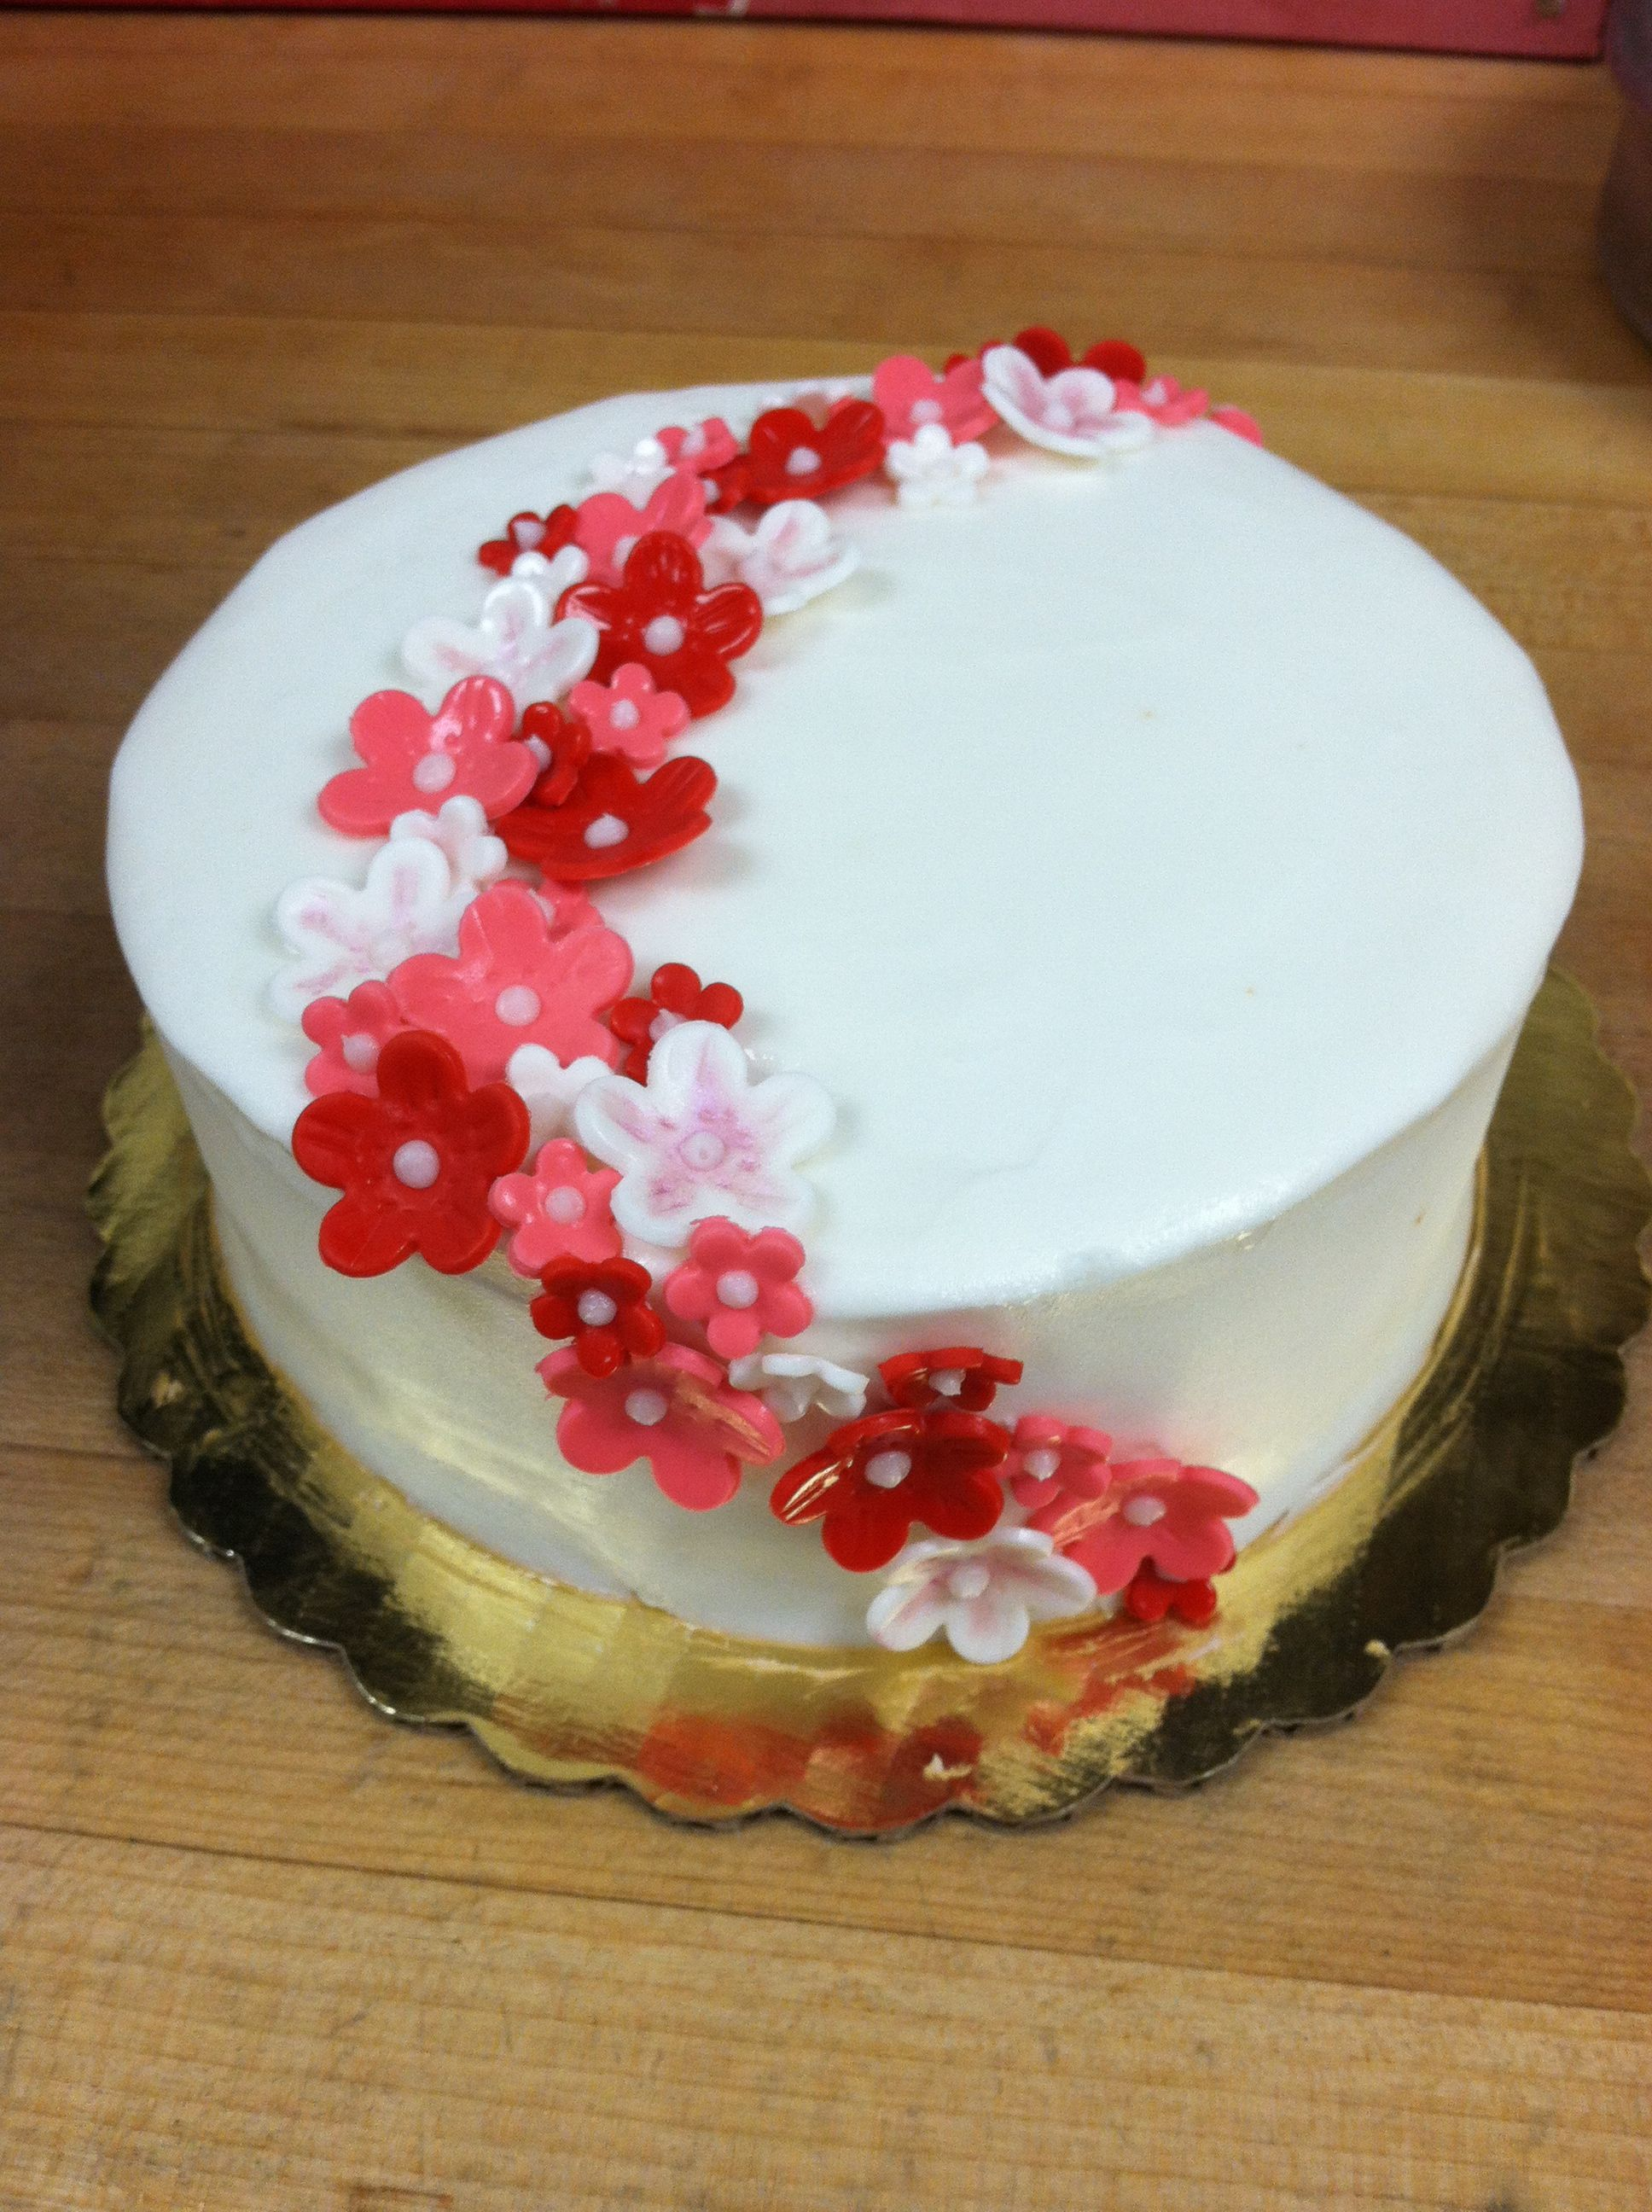 Cake Decorating Natural Flowers : Simple flower cake things i ve made Pinterest Simple ...